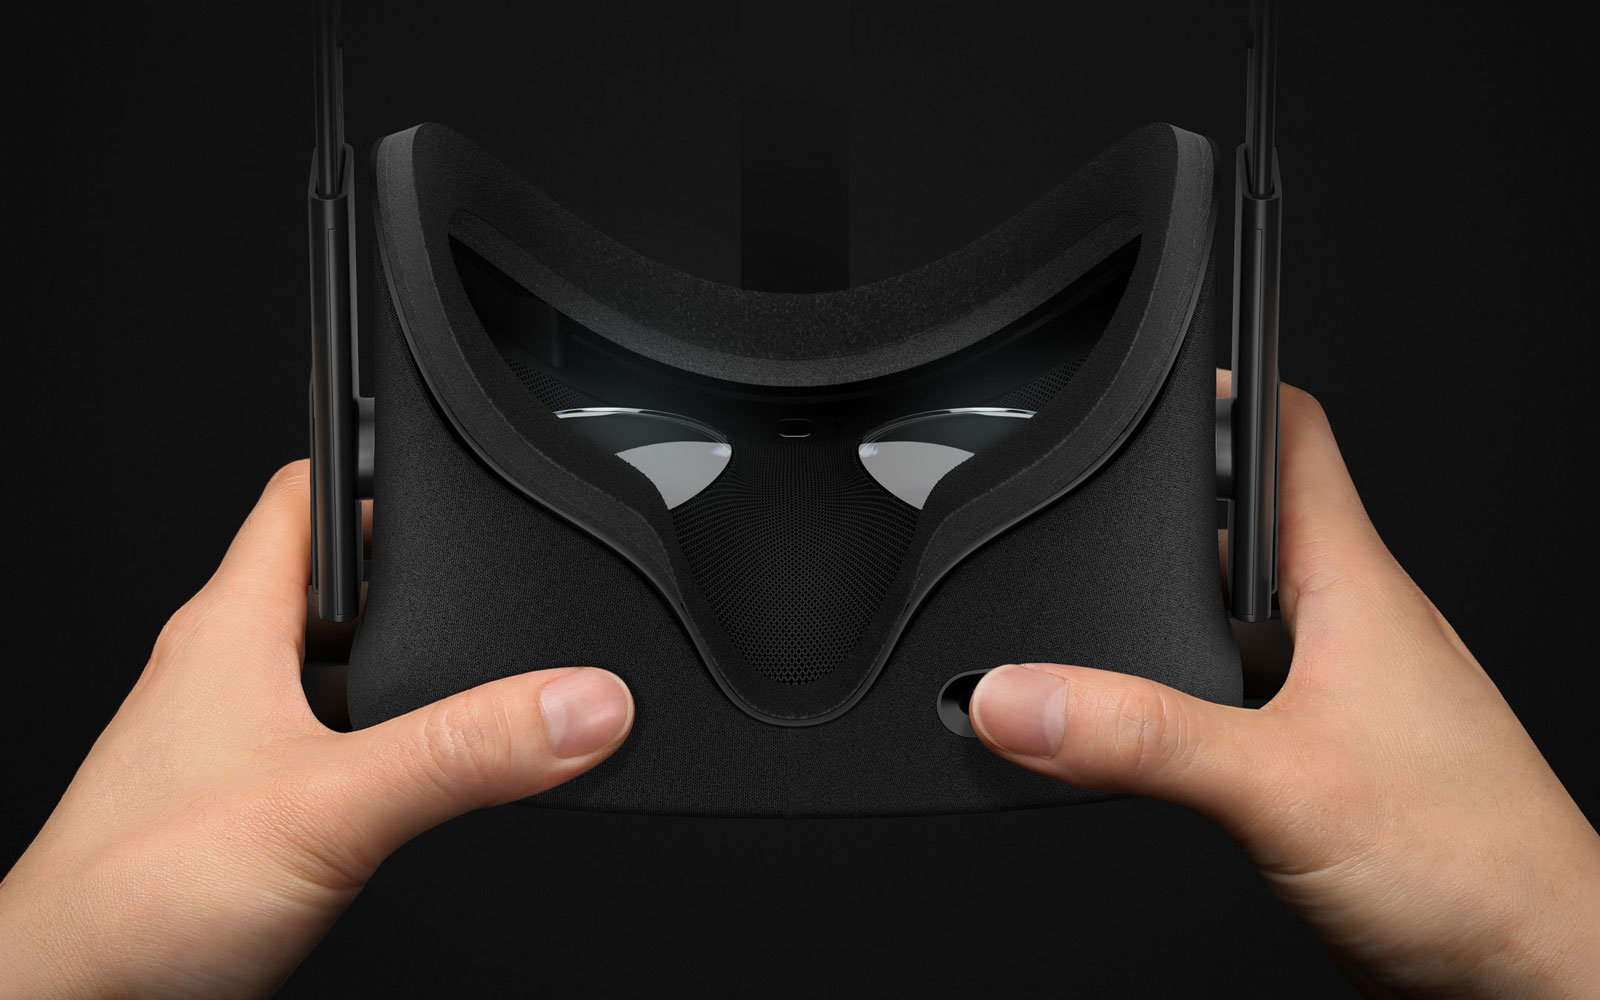 Oculus Rift can now be pre-ordered in Europe and Canada.